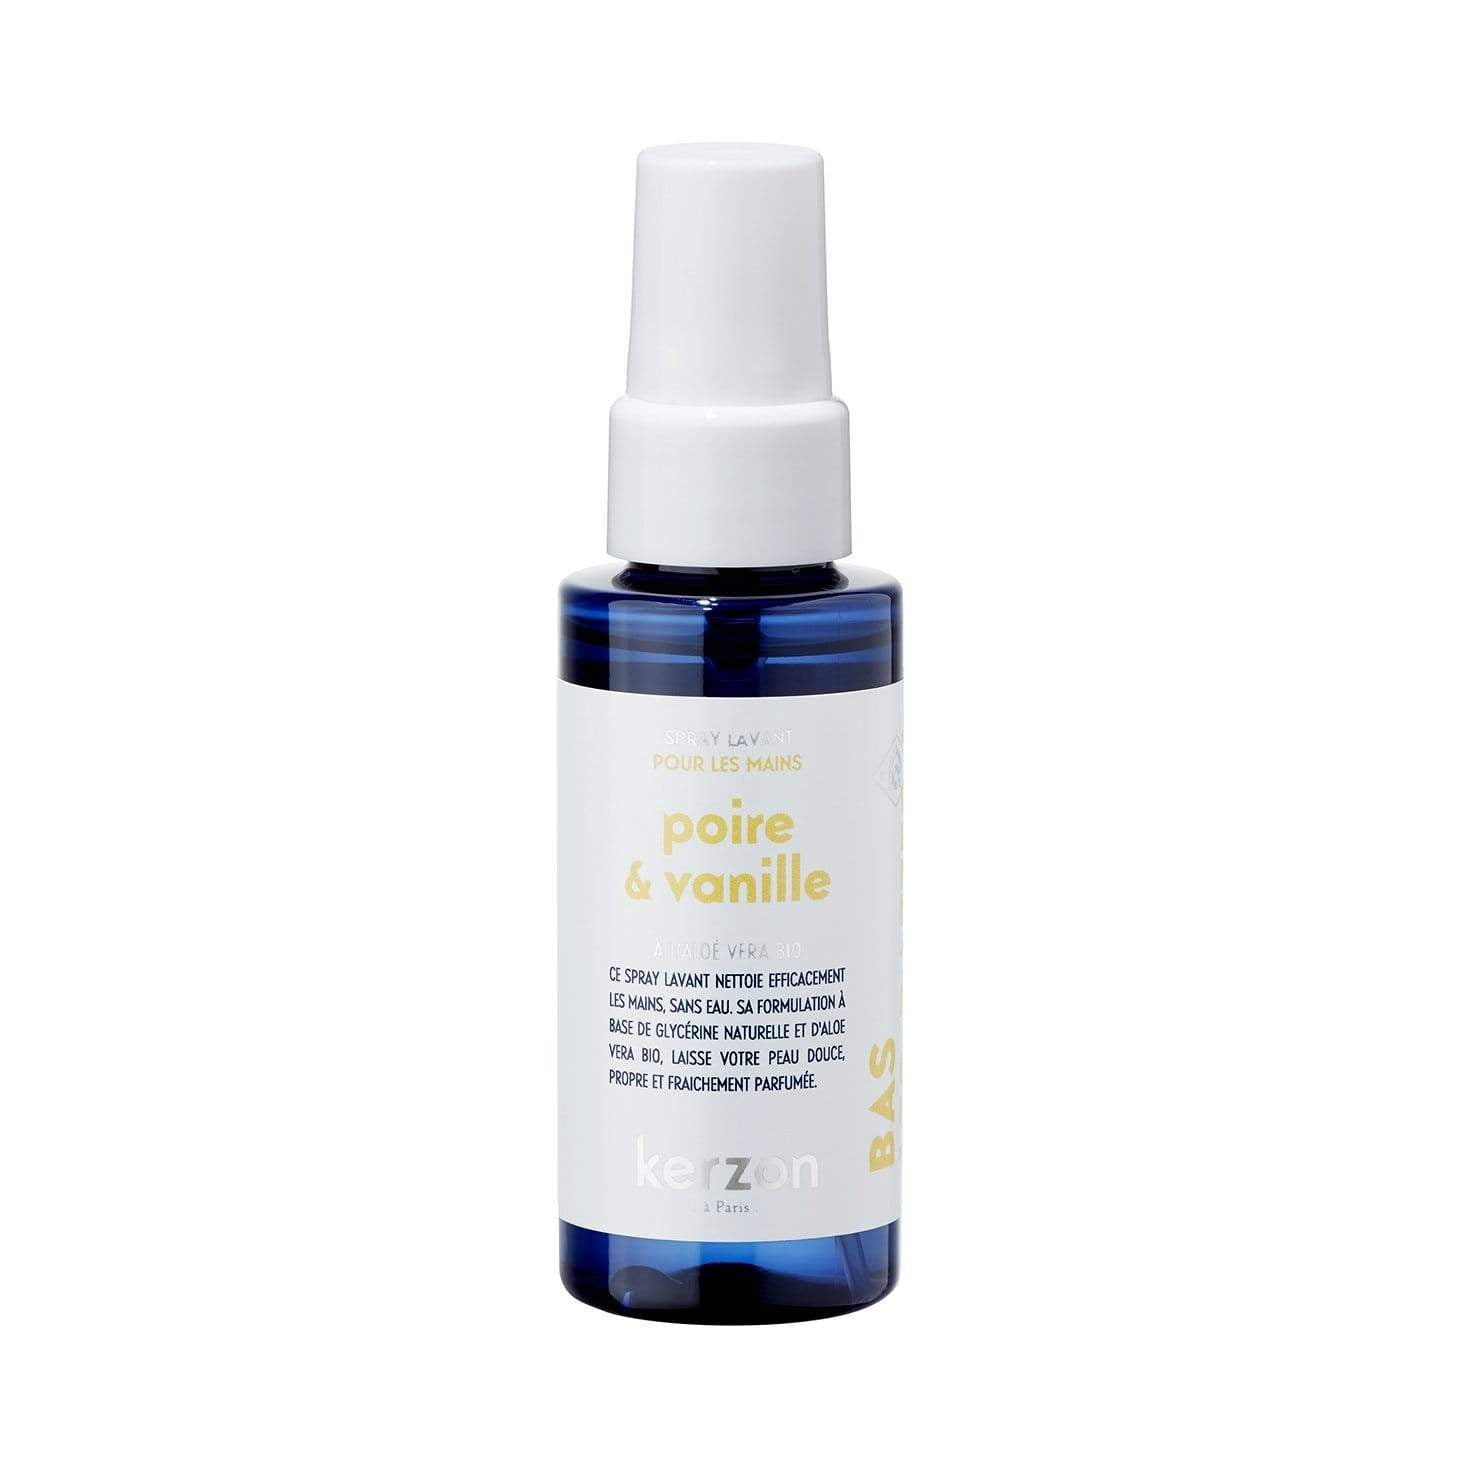 Kerzon Poire & Vanille Hand Cleansing Spray